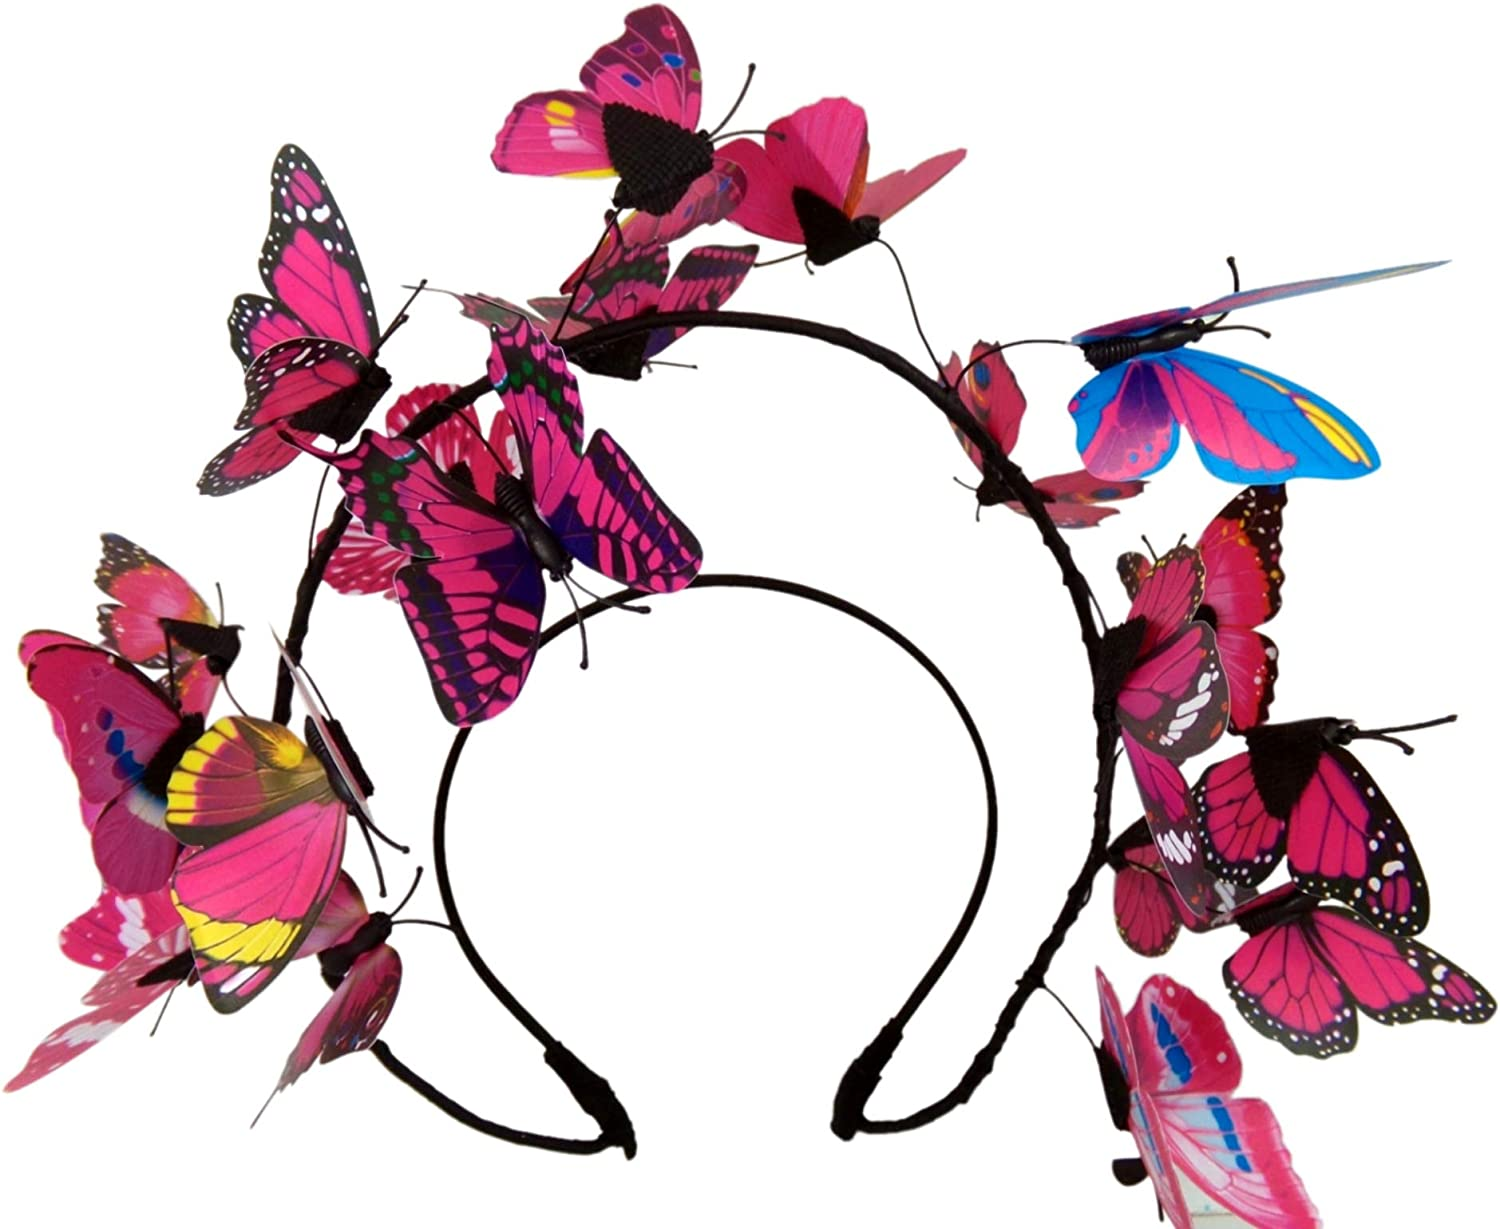 Butterfly Headband for Women Fascinator Crown Halloween Festival Costume Accessory Headpiece, One Size Fits Most